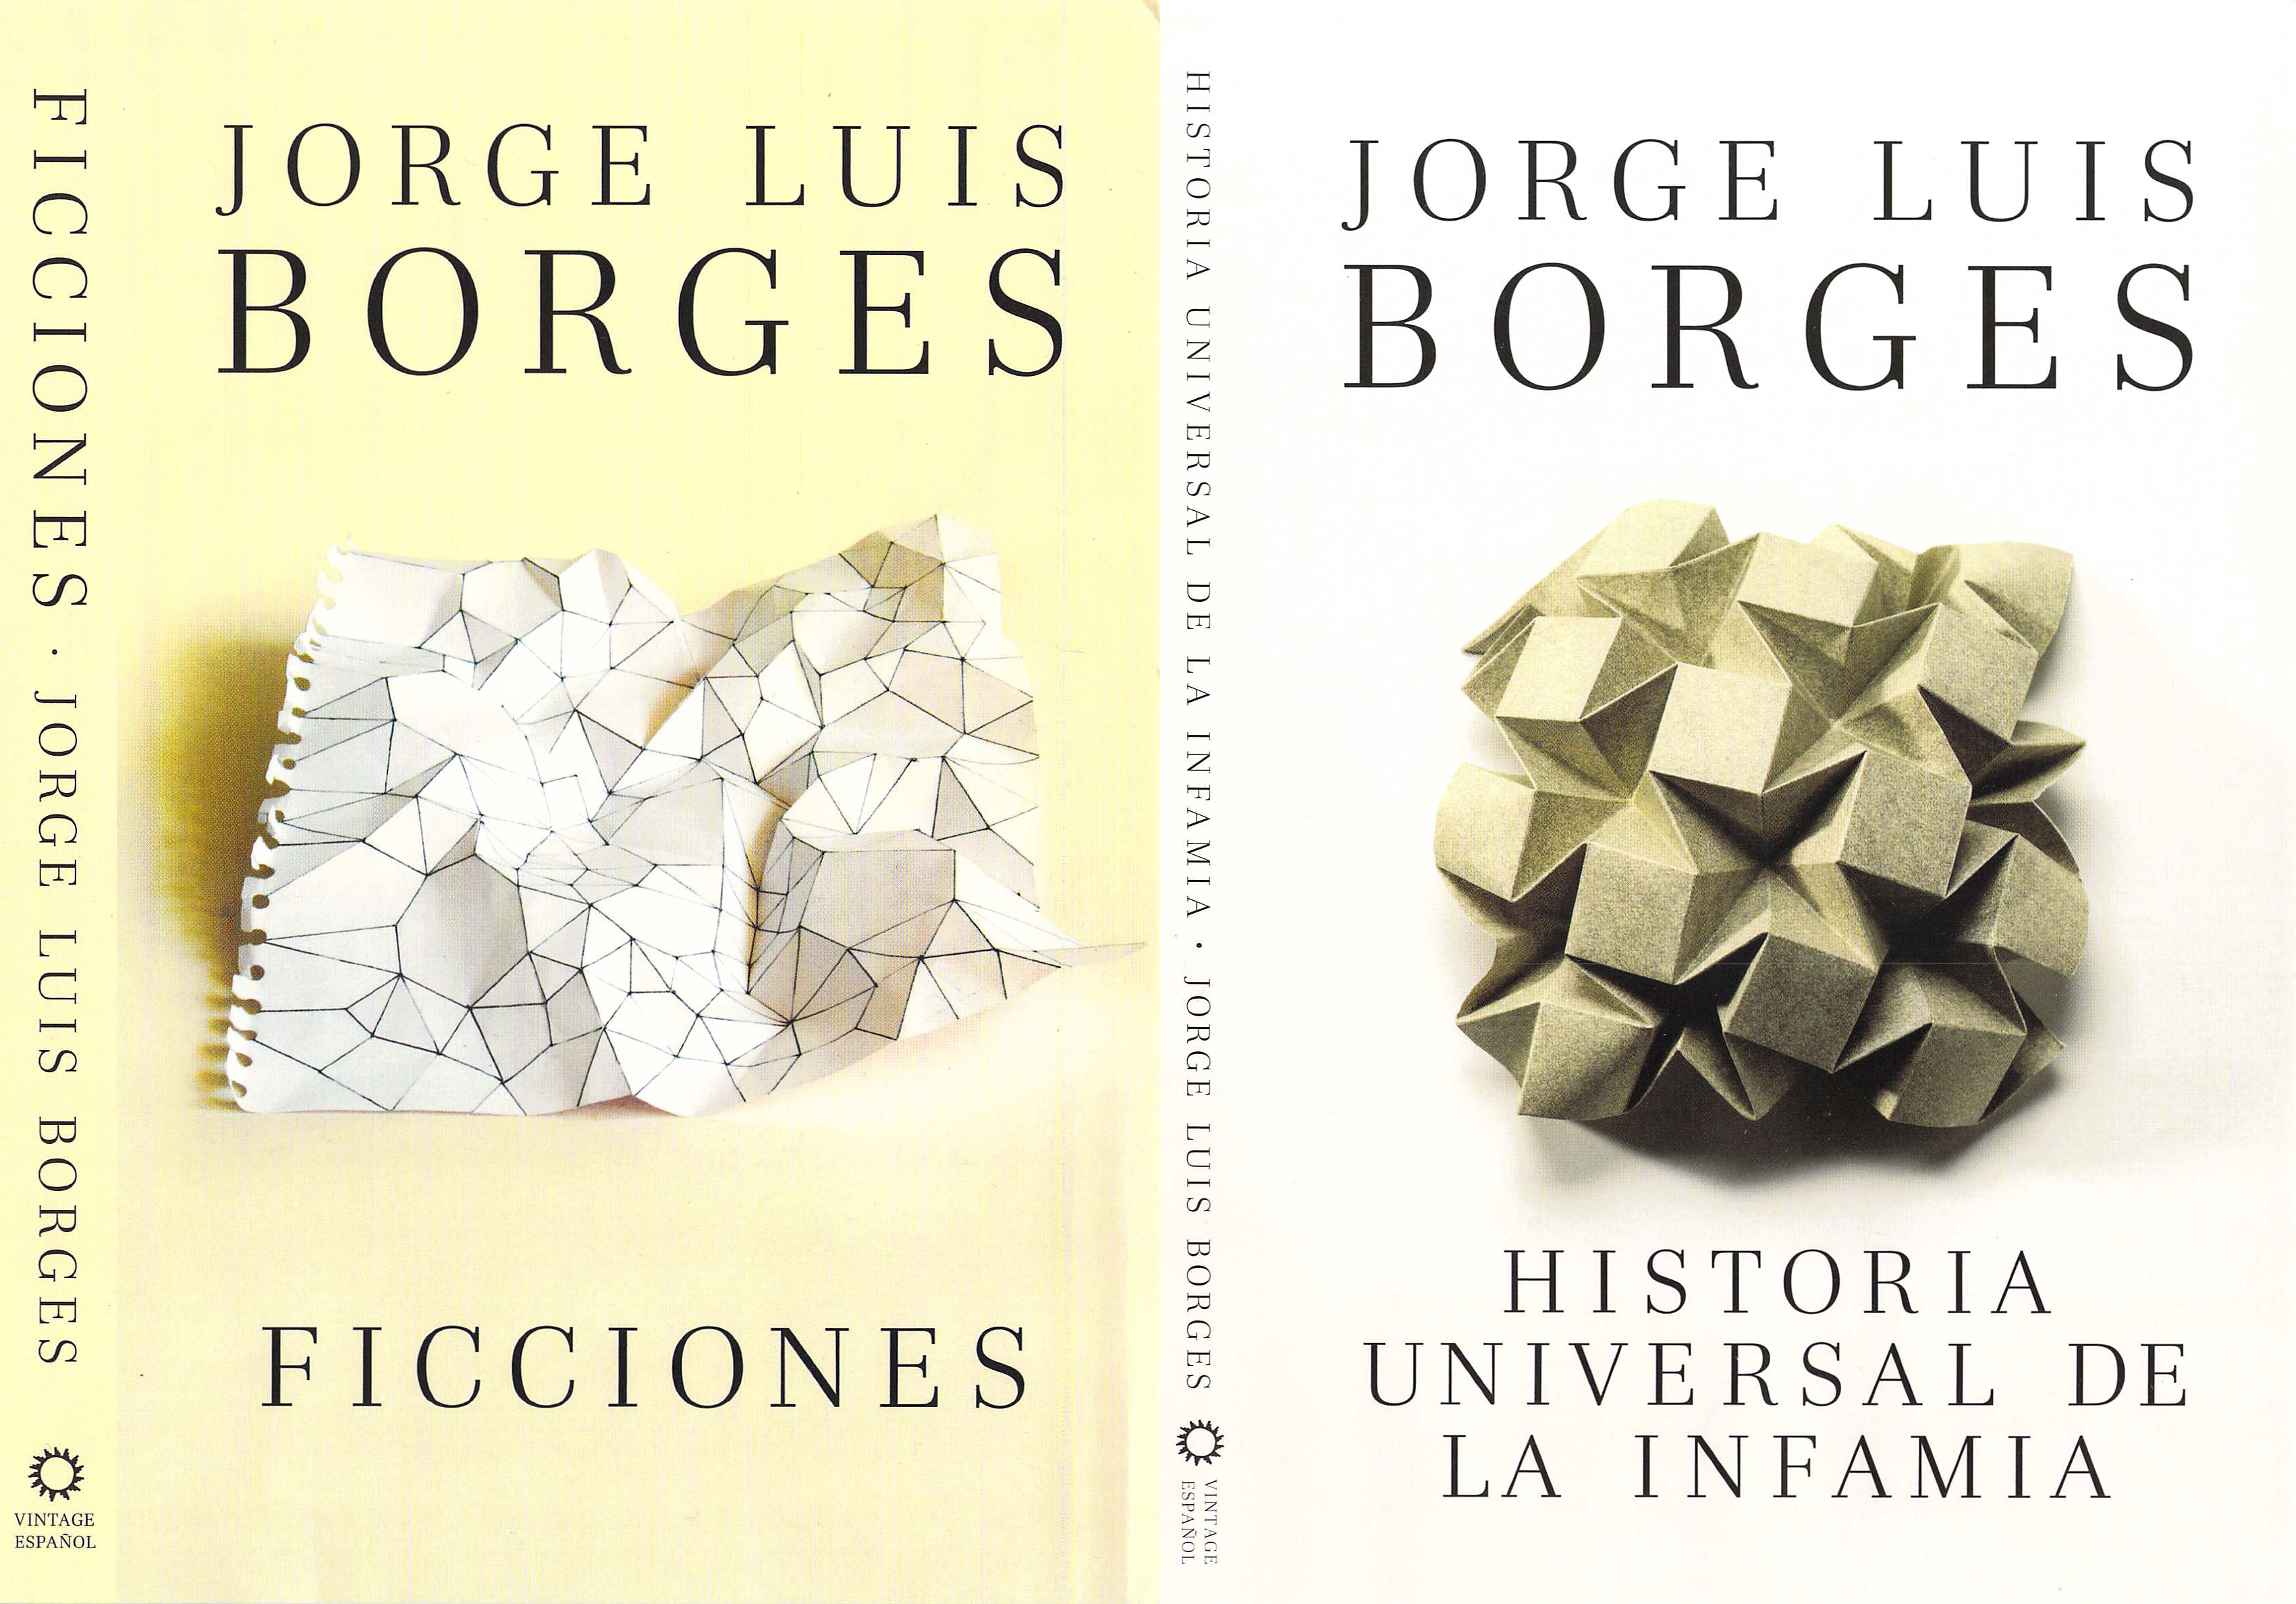 Jorge Luis Borges covers